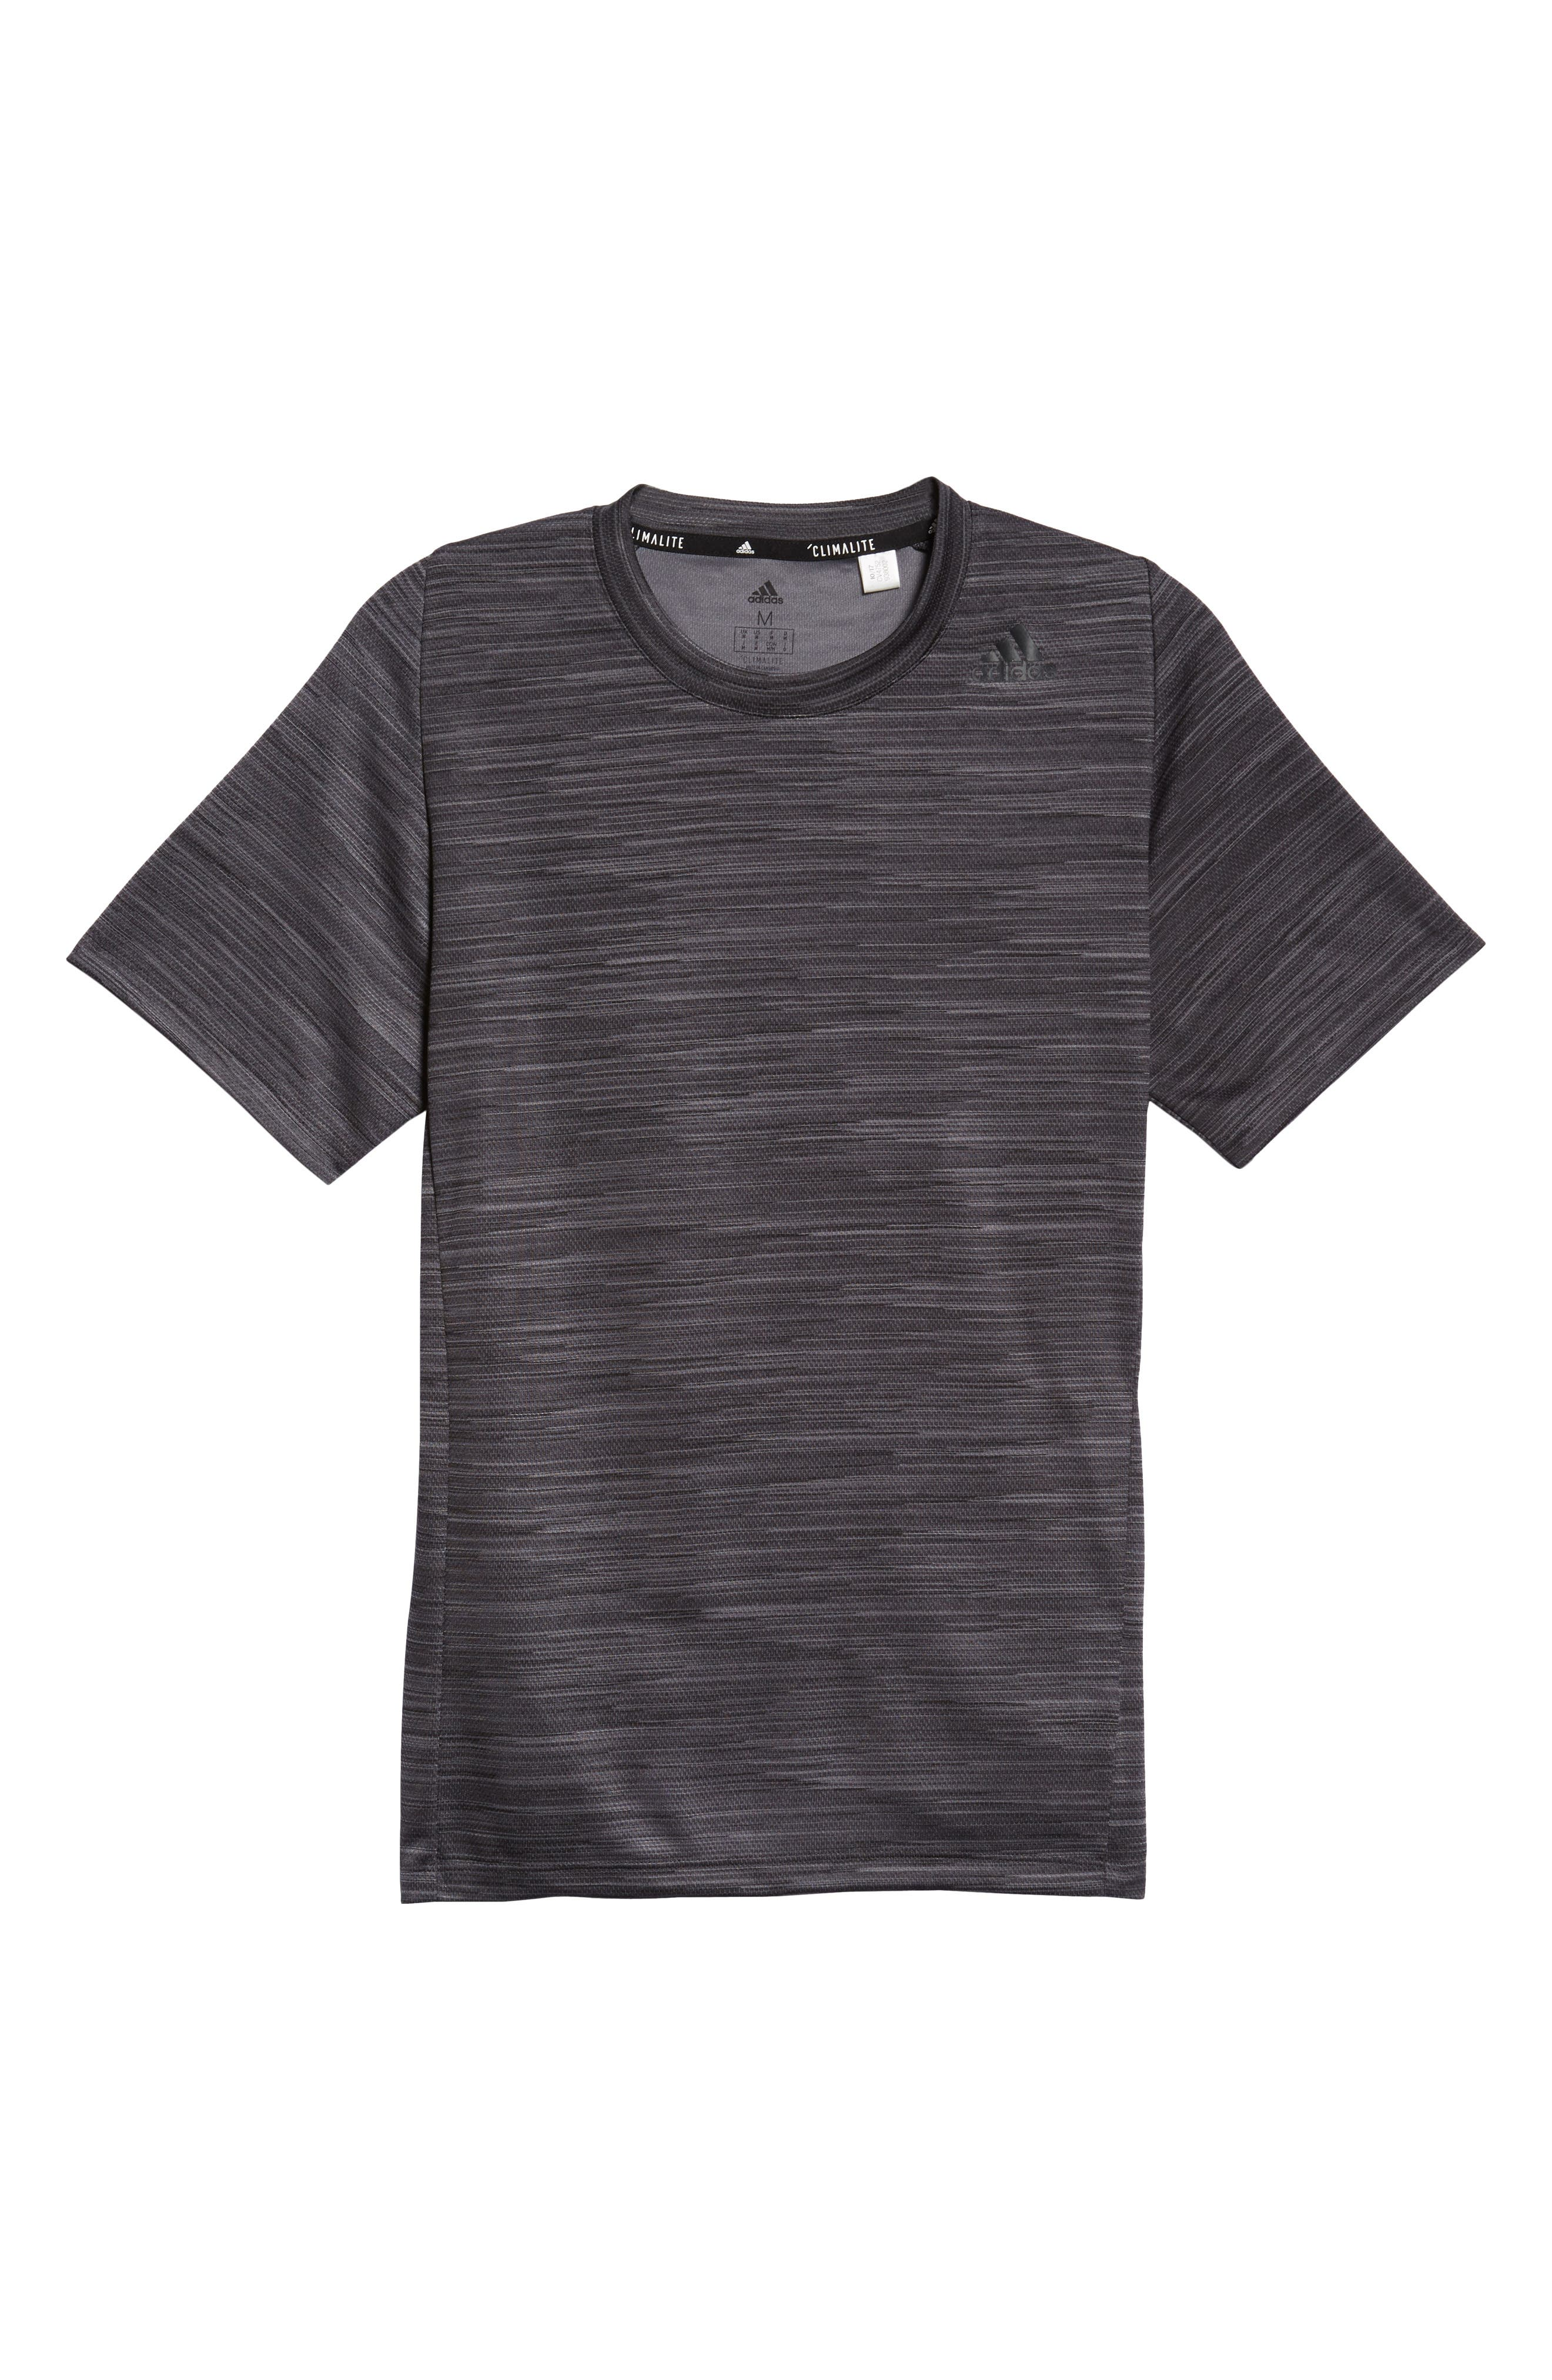 Ultimate Tech T-Shirt,                             Alternate thumbnail 6, color,                             Carbon